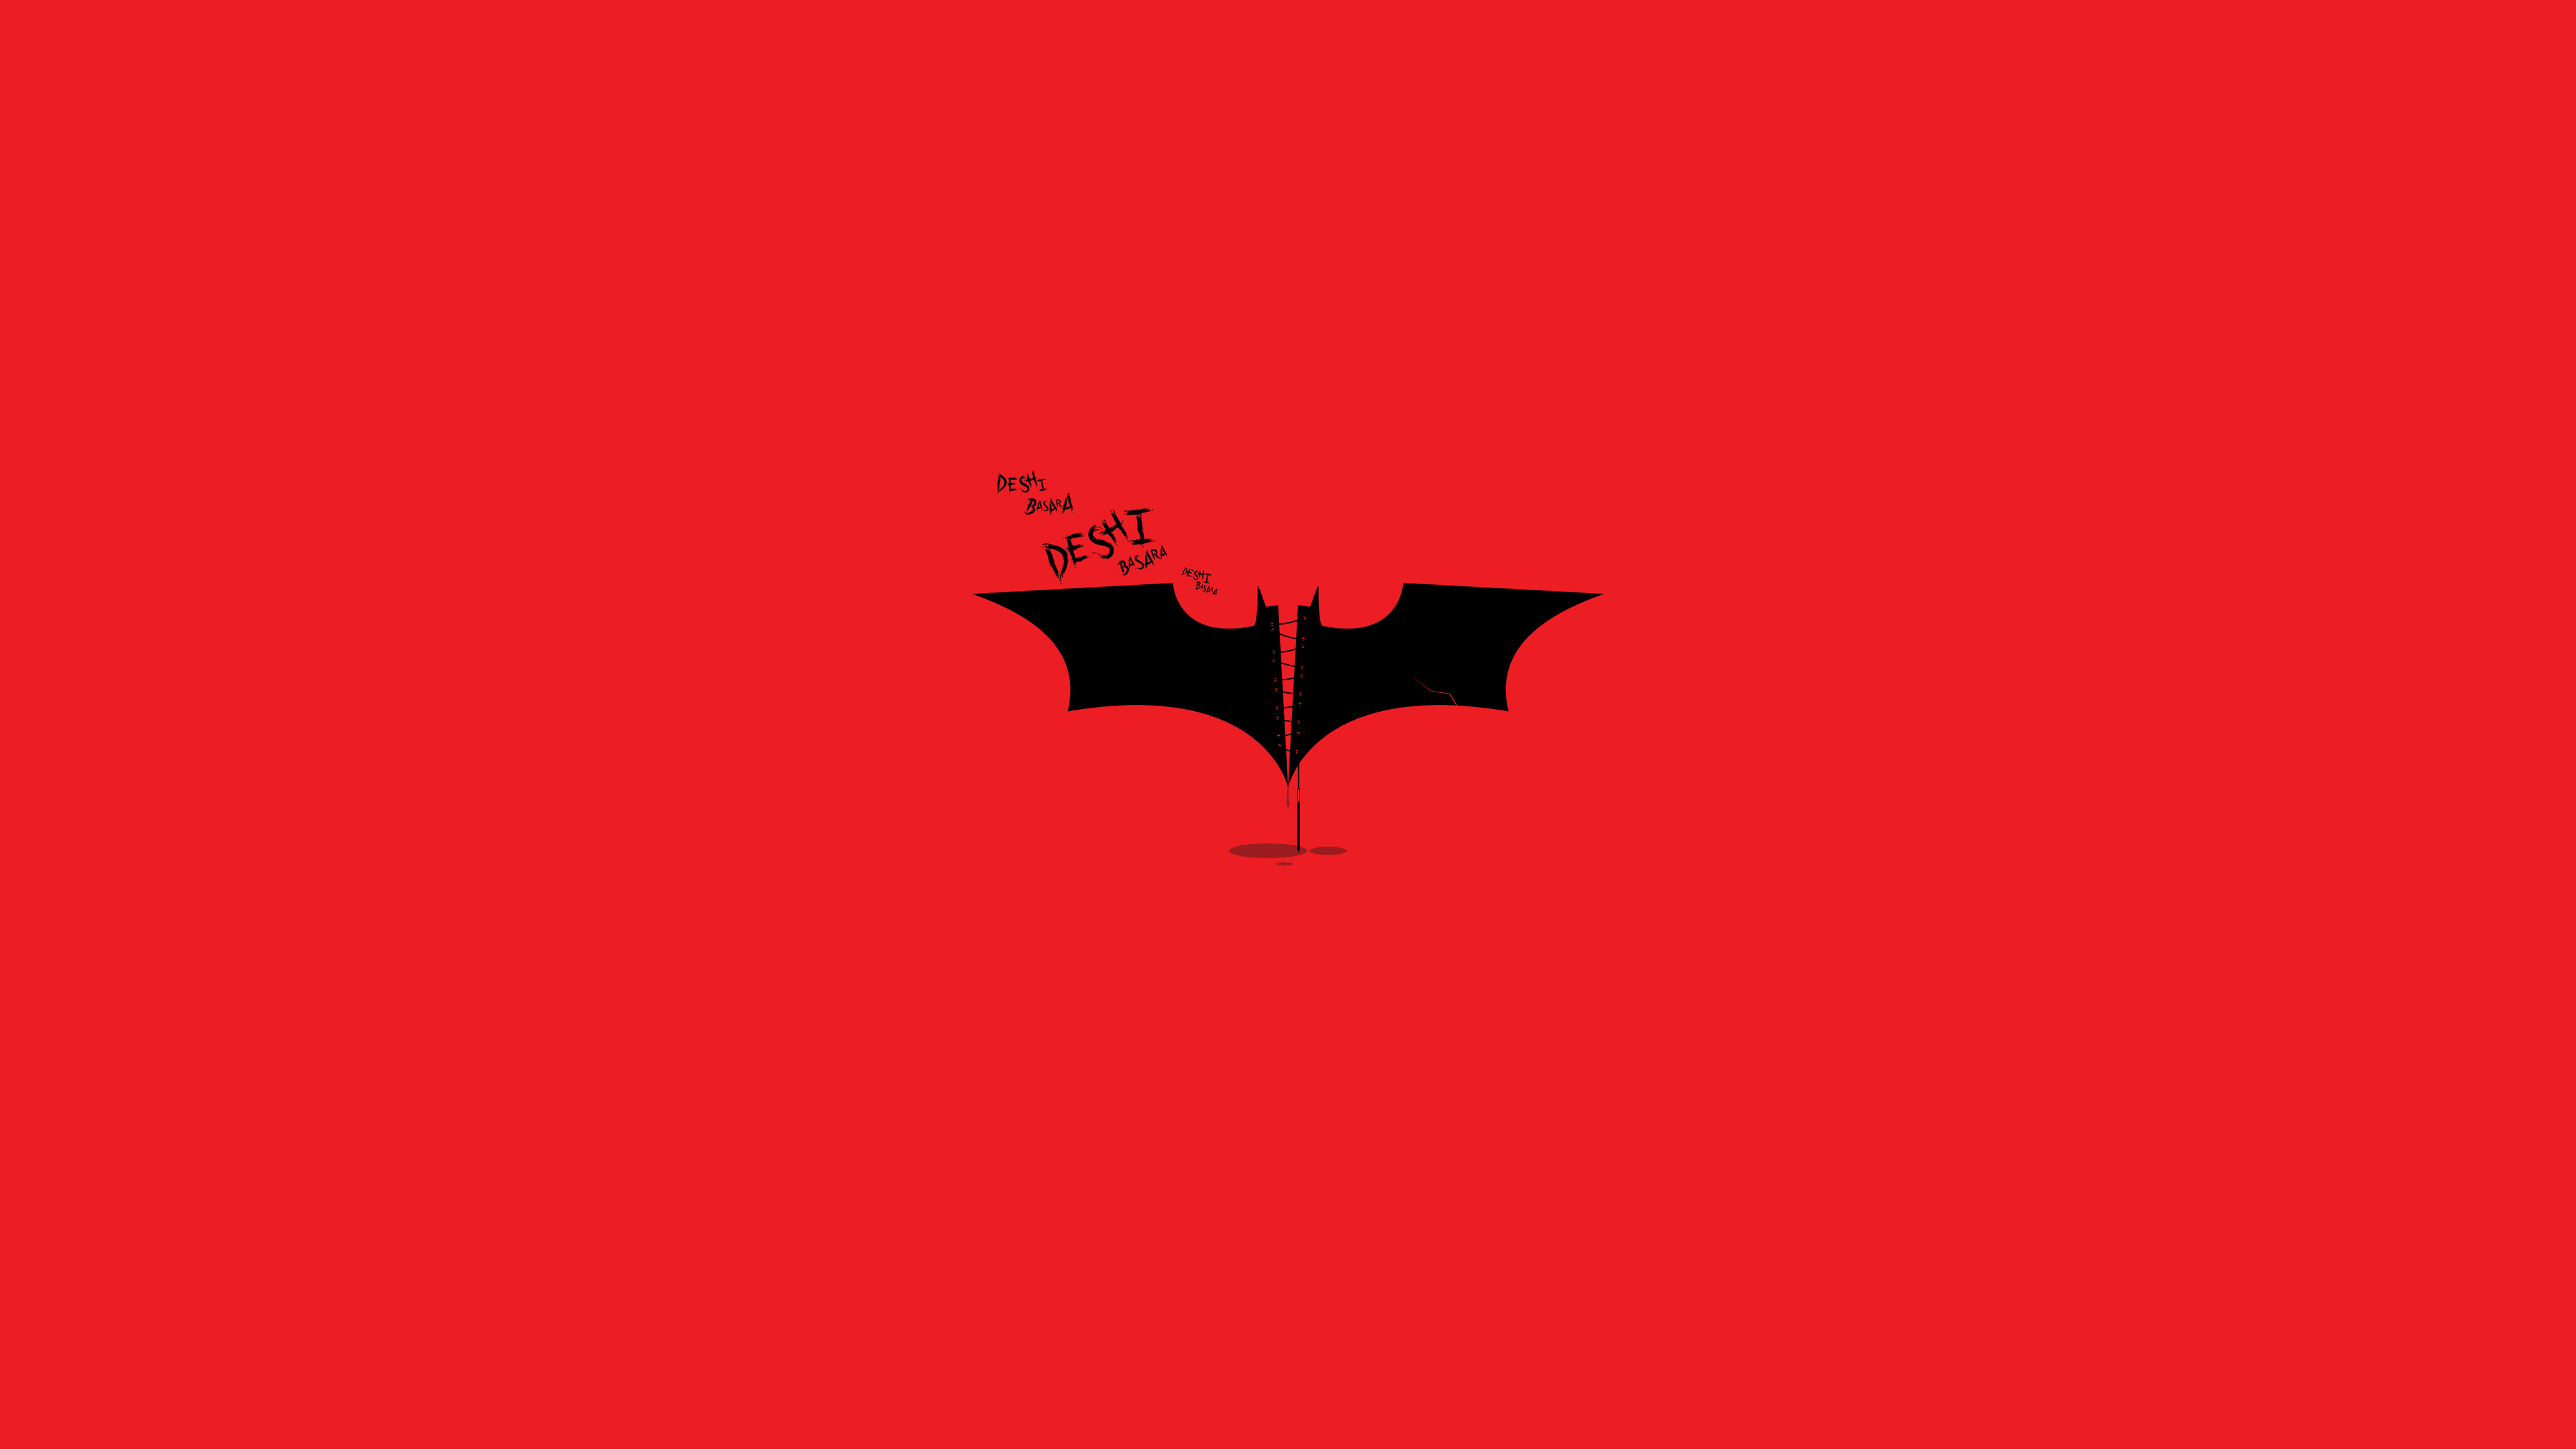 batman logo minimalist 4k 1547936367 - Batman Logo Minimalist 4k - superheroes wallpapers, minimalist wallpapers, minimalism wallpapers, logo wallpapers, hd-wallpapers, digital art wallpapers, batman wallpapers, artwork wallpapers, artist wallpapers, 5k wallpapers, 4k-wallpapers